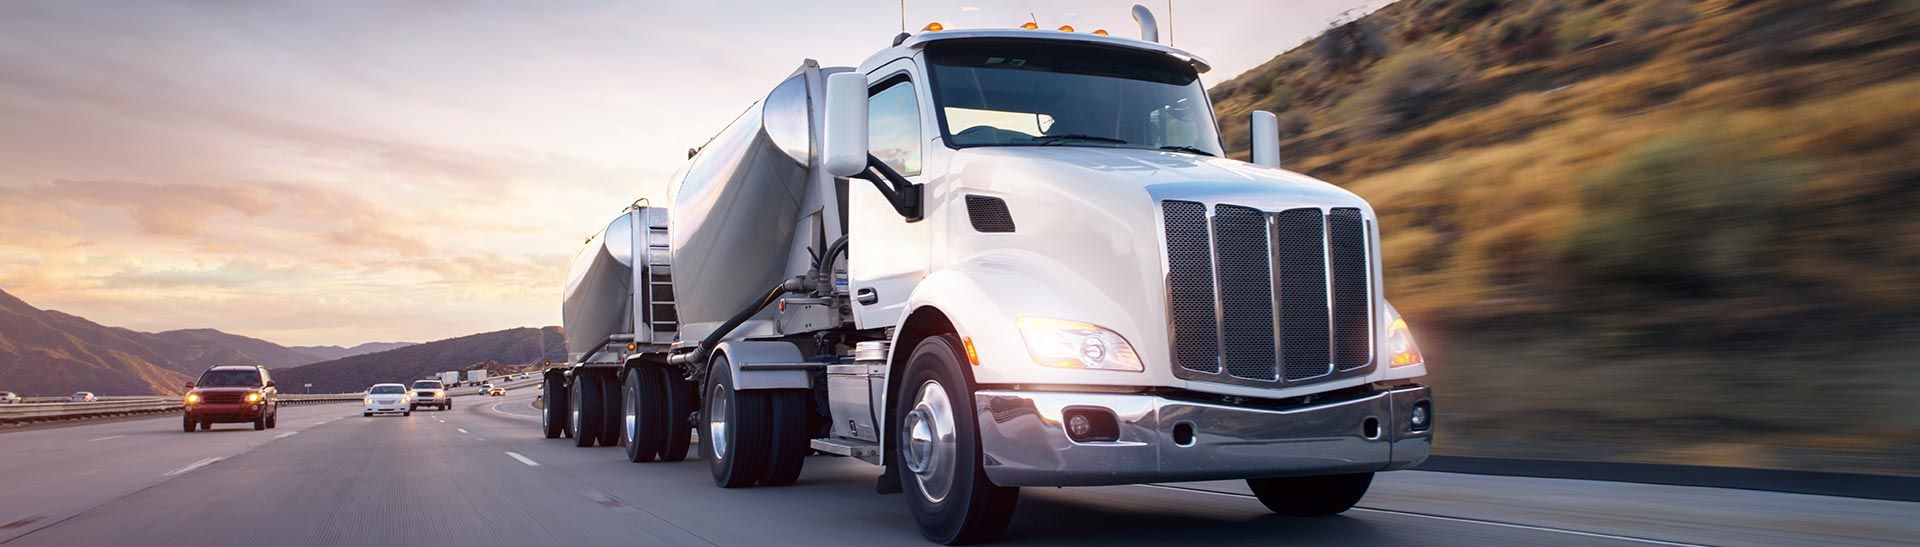 Las Vegas Logistics Services, Hot Shot Trucking and Trucking Services